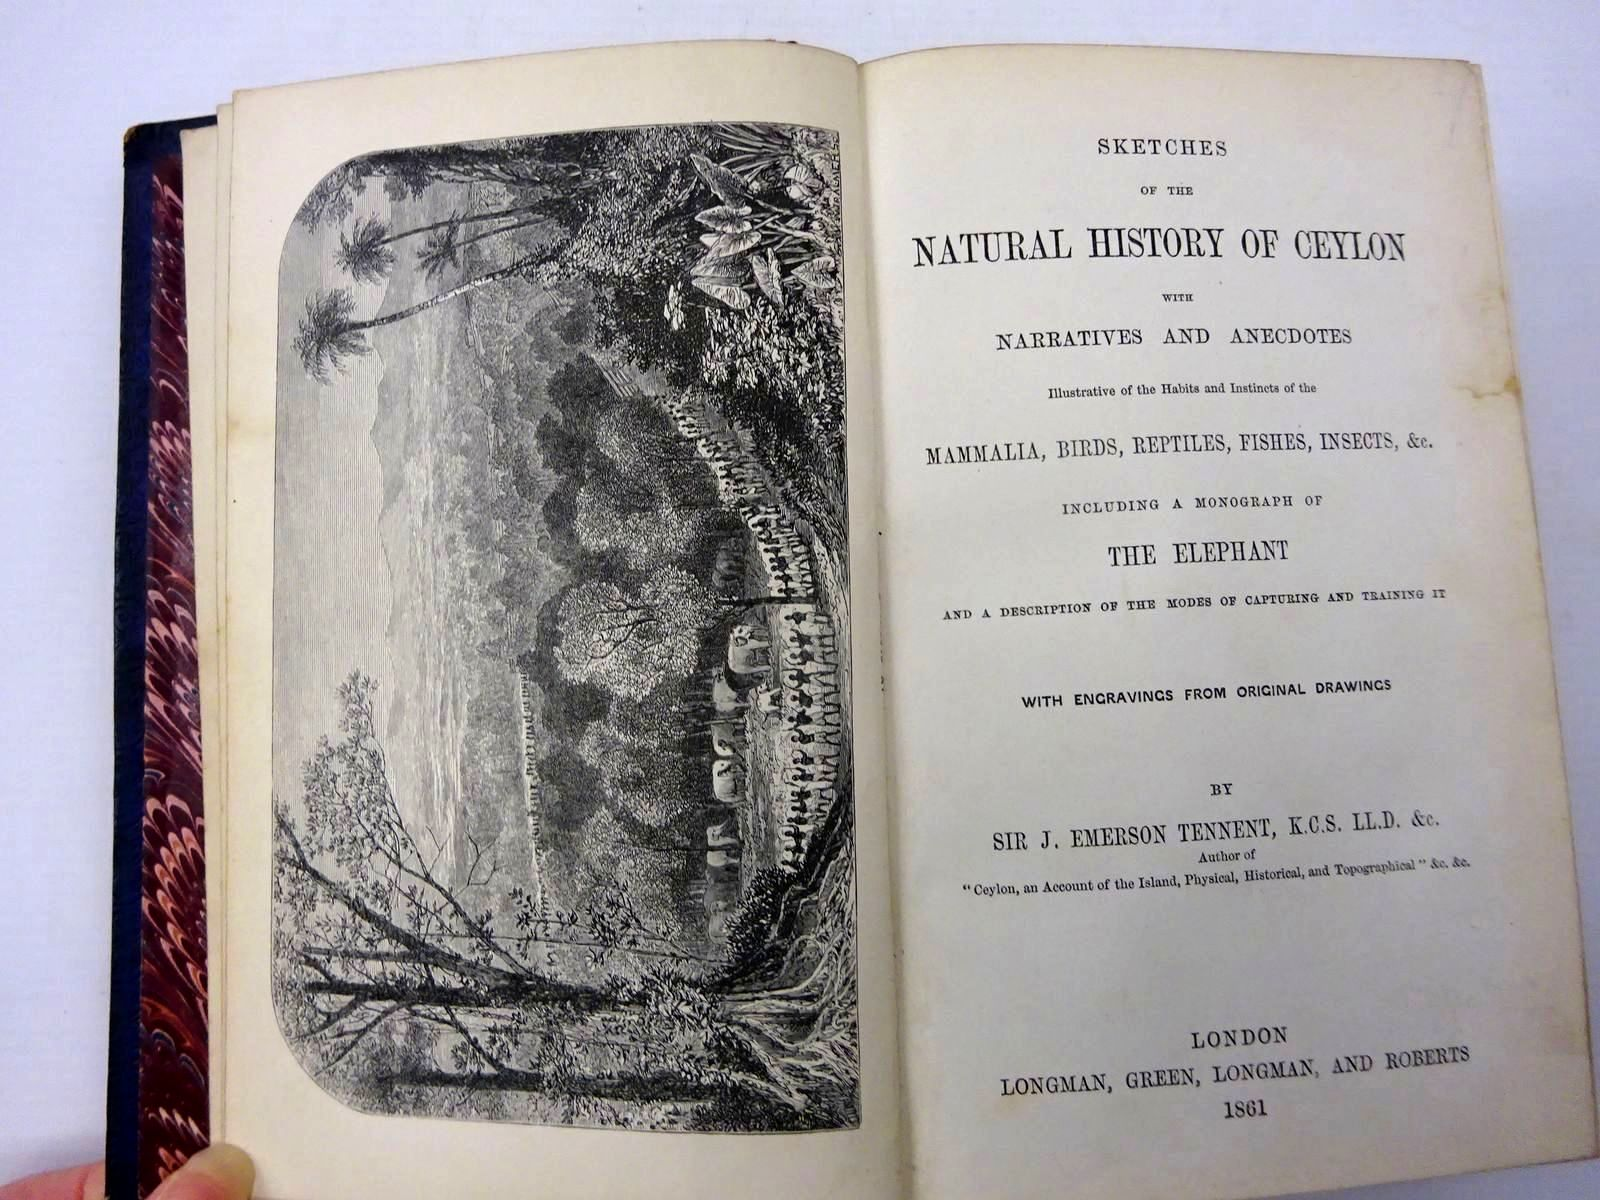 Photo of SKETCHES OF THE NATURAL HISTORY OF CEYLON WITH NARRATIVES AND ANECDOTES written by Tennent, J. Emerson published by Longman, Green, Longman And Roberts (STOCK CODE: 2130270)  for sale by Stella & Rose's Books